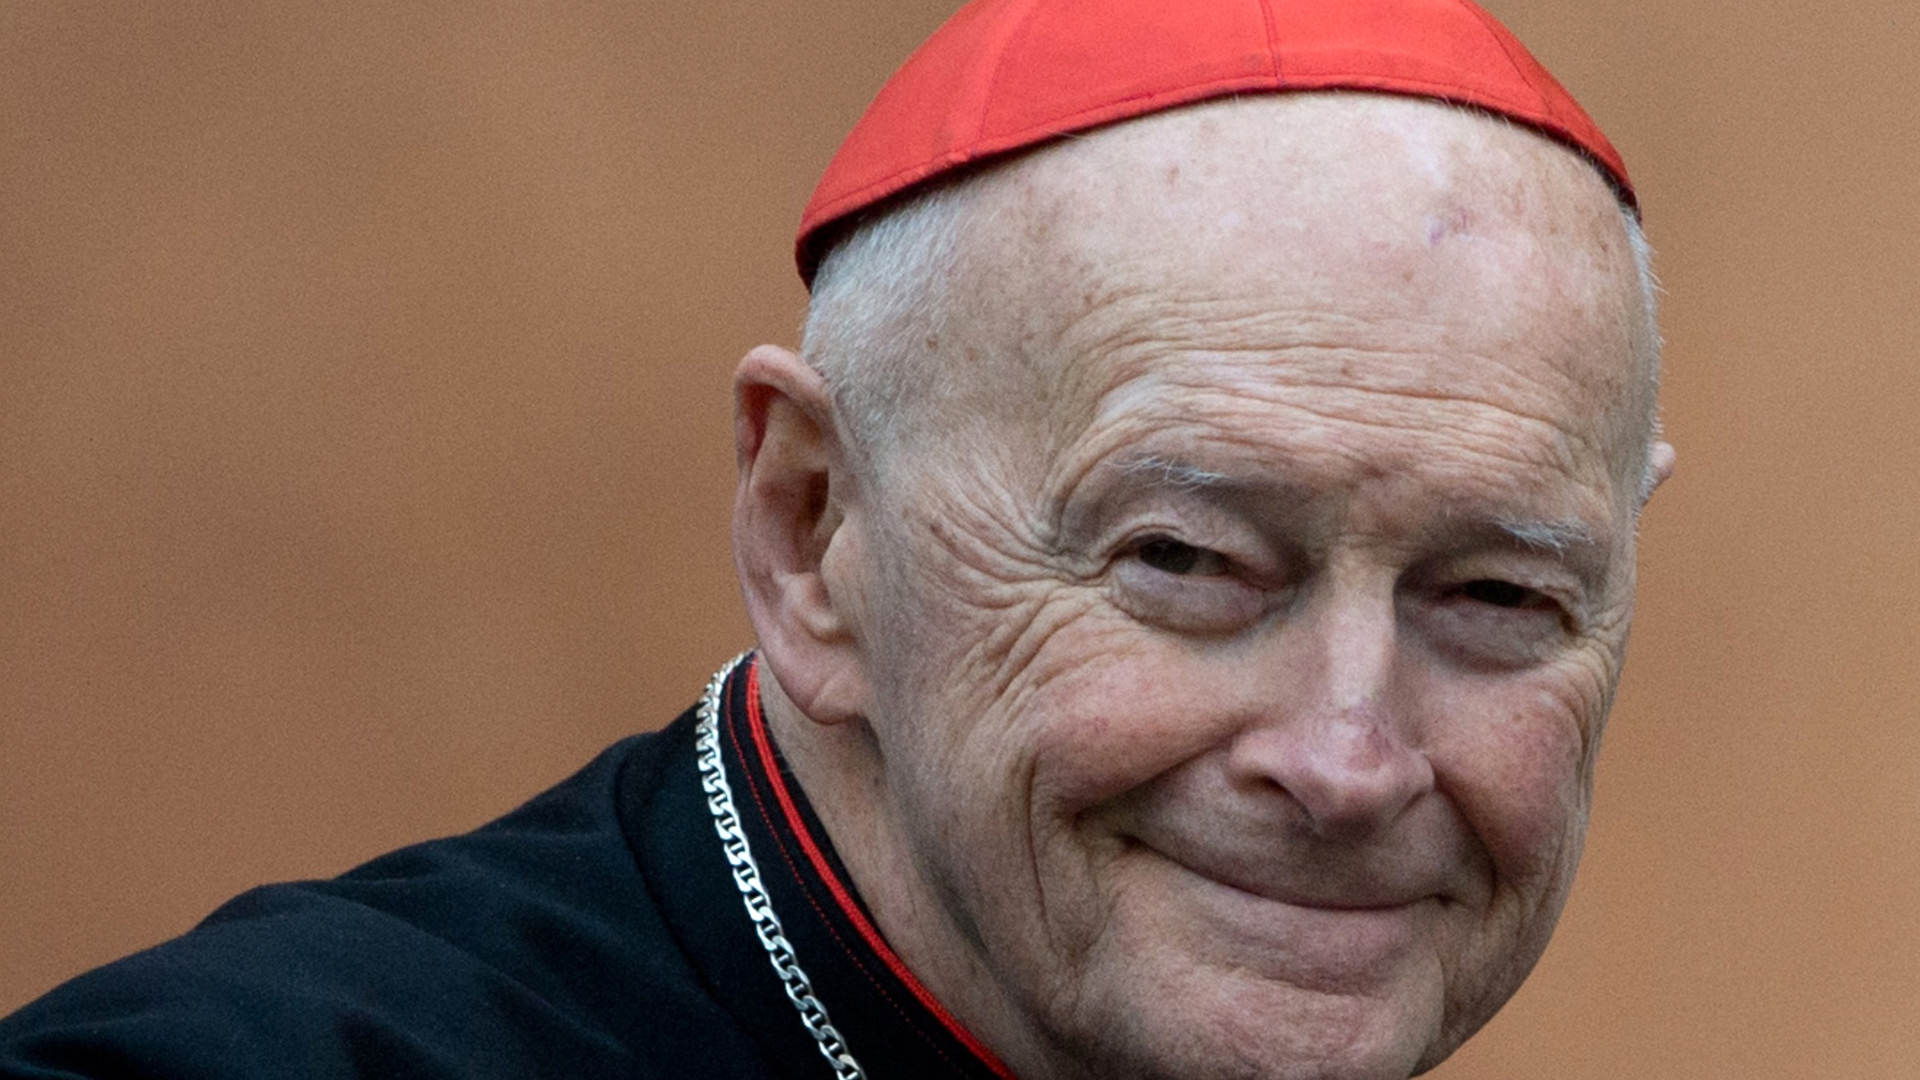 U.S. Cardinal Theodore Edgar McCarrick arrives for a meeting on the eve of the start of a conclave on March 11, 2013, at the Vatican. (Credit: JOHANNES EISELE/AFP via Getty Images)